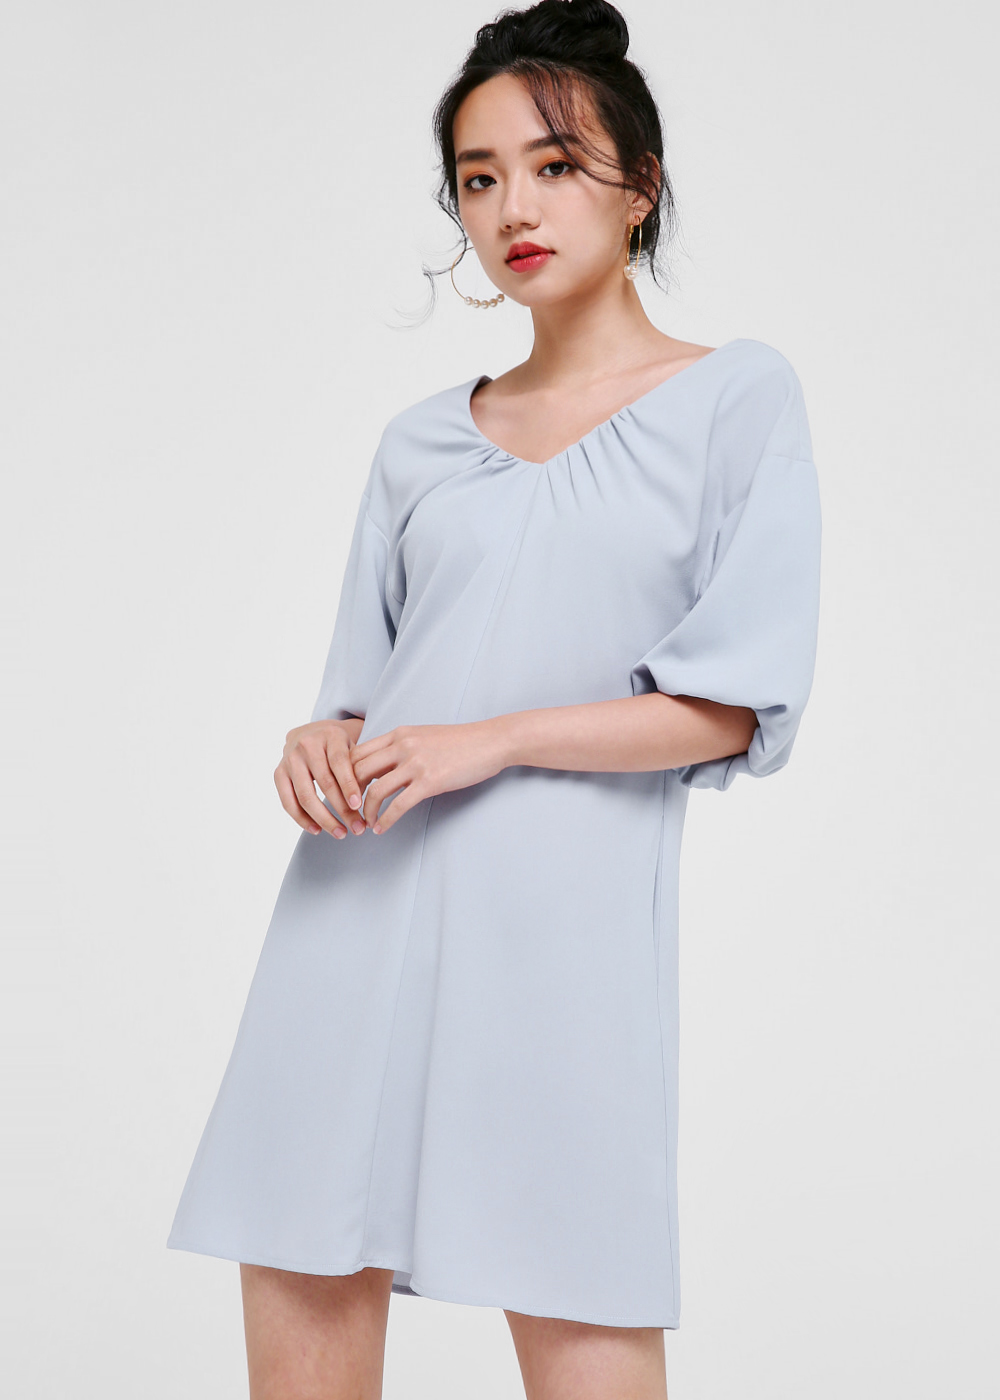 Sequoia Balloon Sleeve Dress